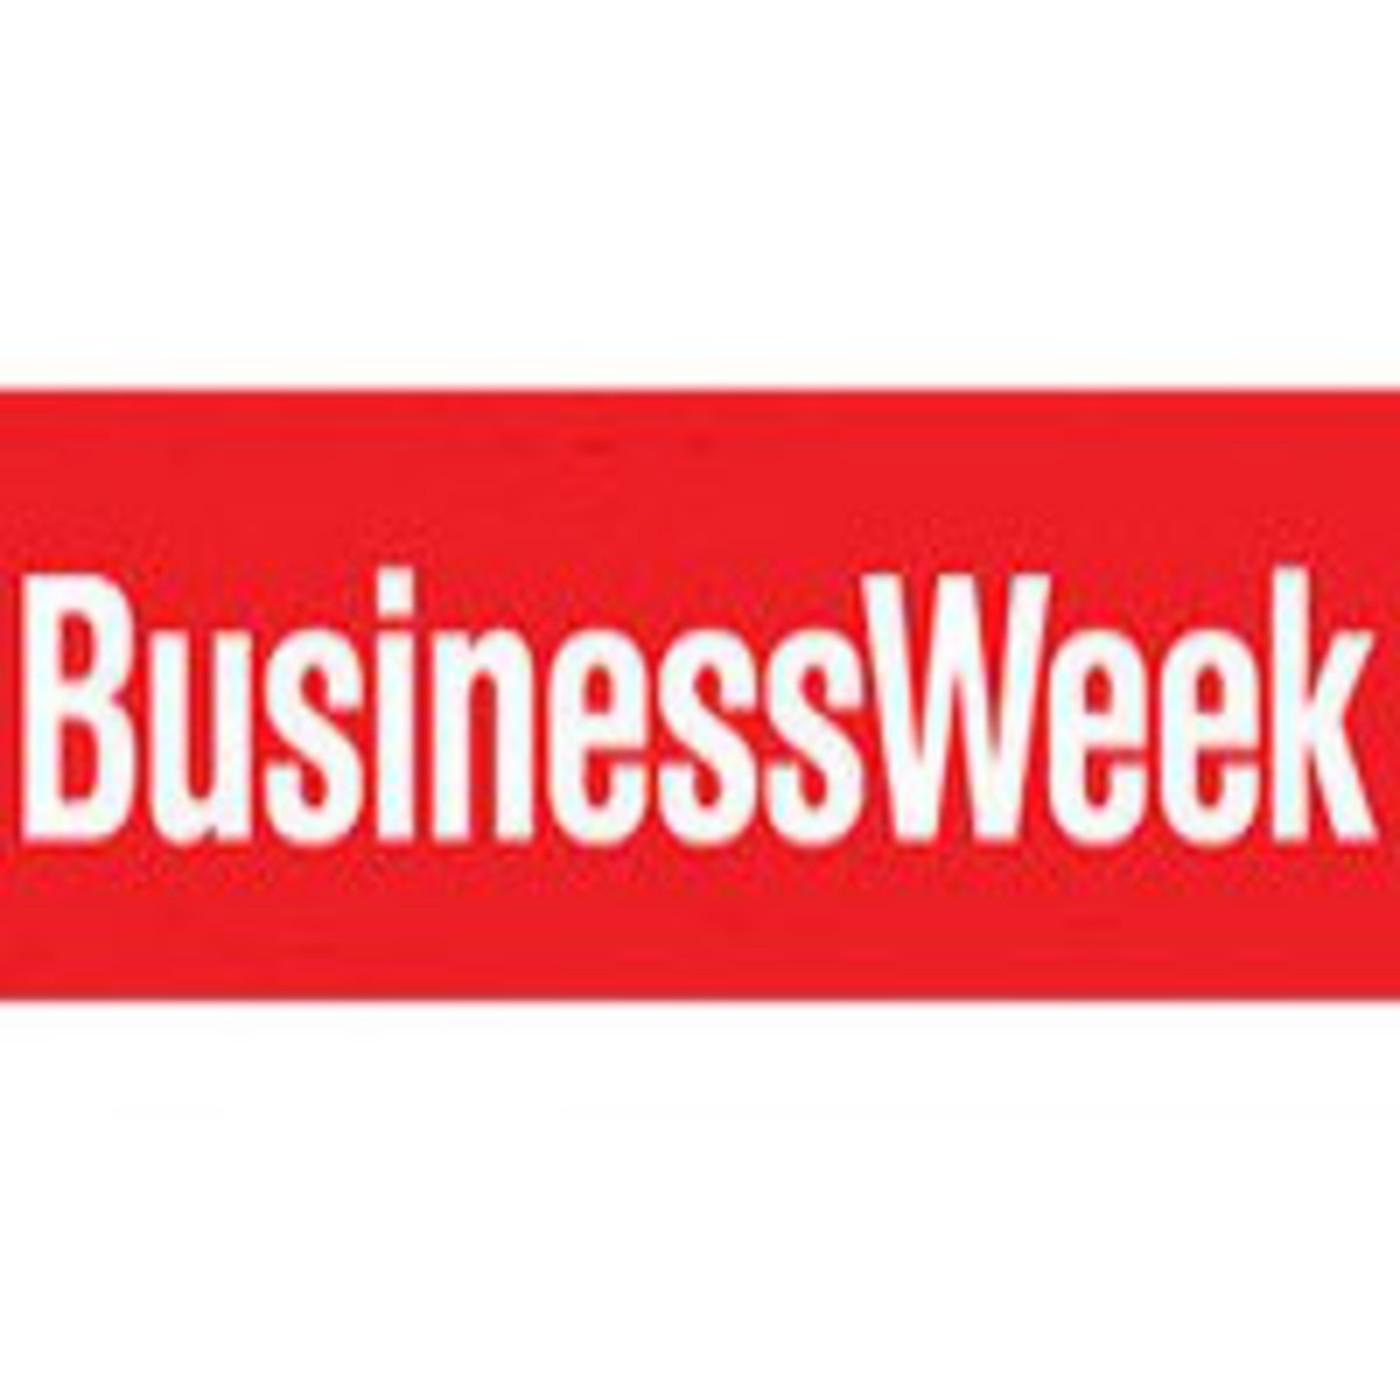 Listen the channel BusinessWeek - iVoox